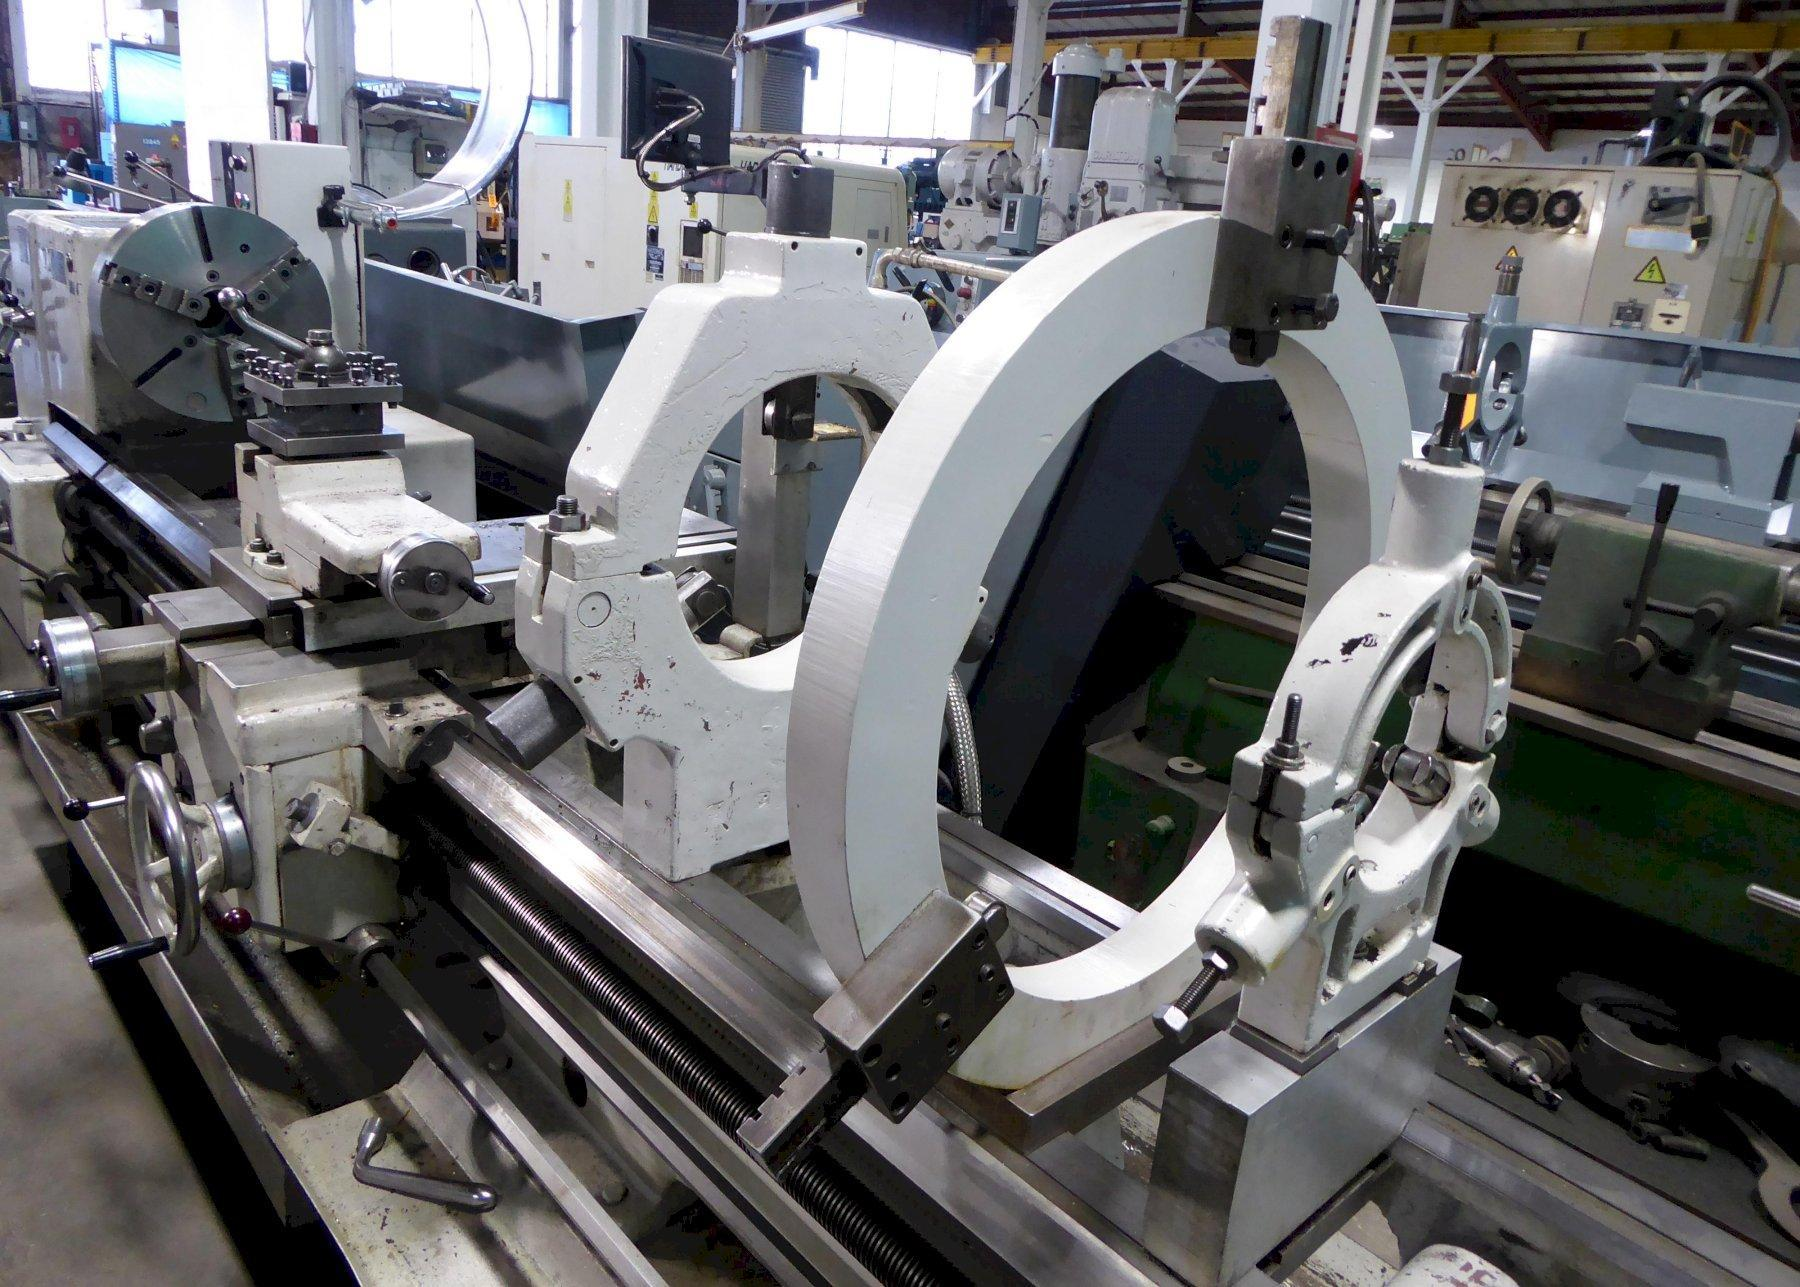 """28""""/37"""" x 156"""" TOS Gap Bed Lathe, 10-1000 RPM, 3"""" Hole, Inch/mm, DRO, Clean, Low Price"""